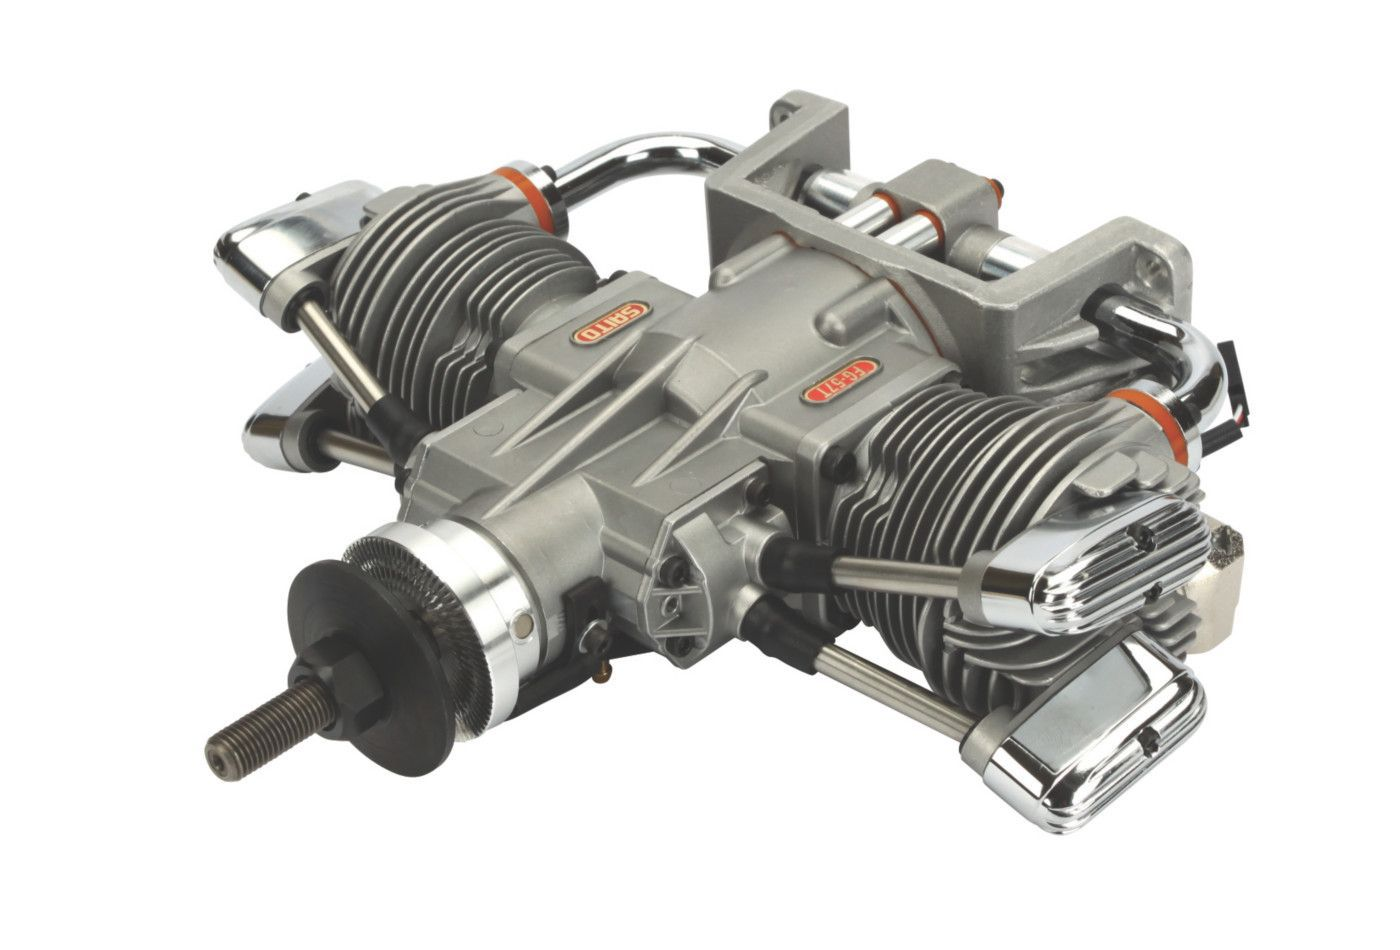 small resolution of image for 57cc gas twin engine 4 stroke bg from horizonhobby